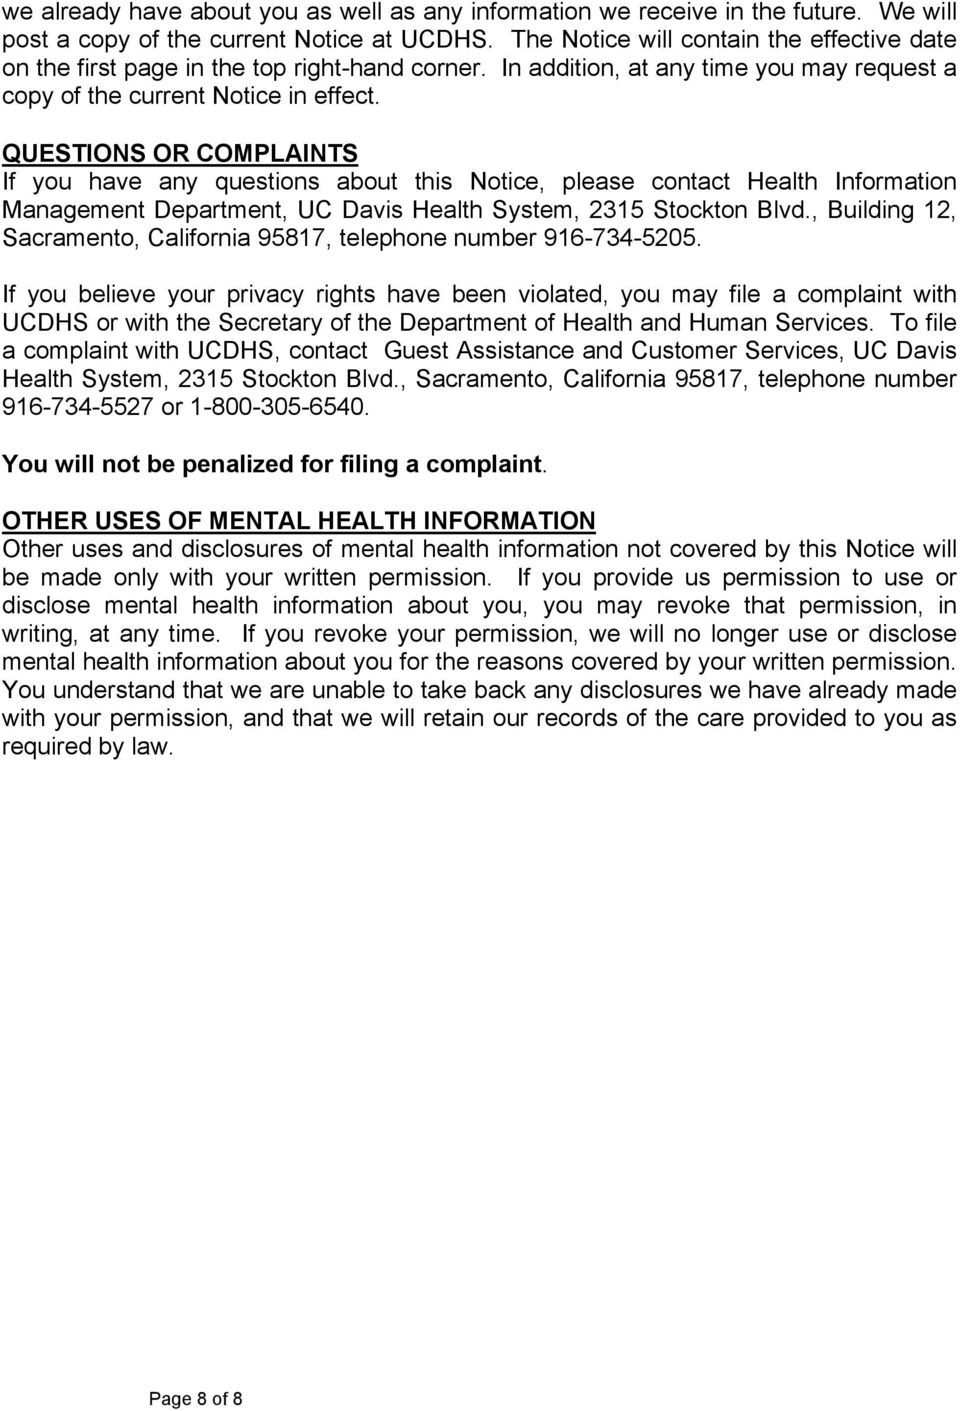 QUESTIONS OR COMPLAINTS If you have any questions about this Notice, please contact Health Information Management Department, UC Davis Health System, 2315 Stockton Blvd.